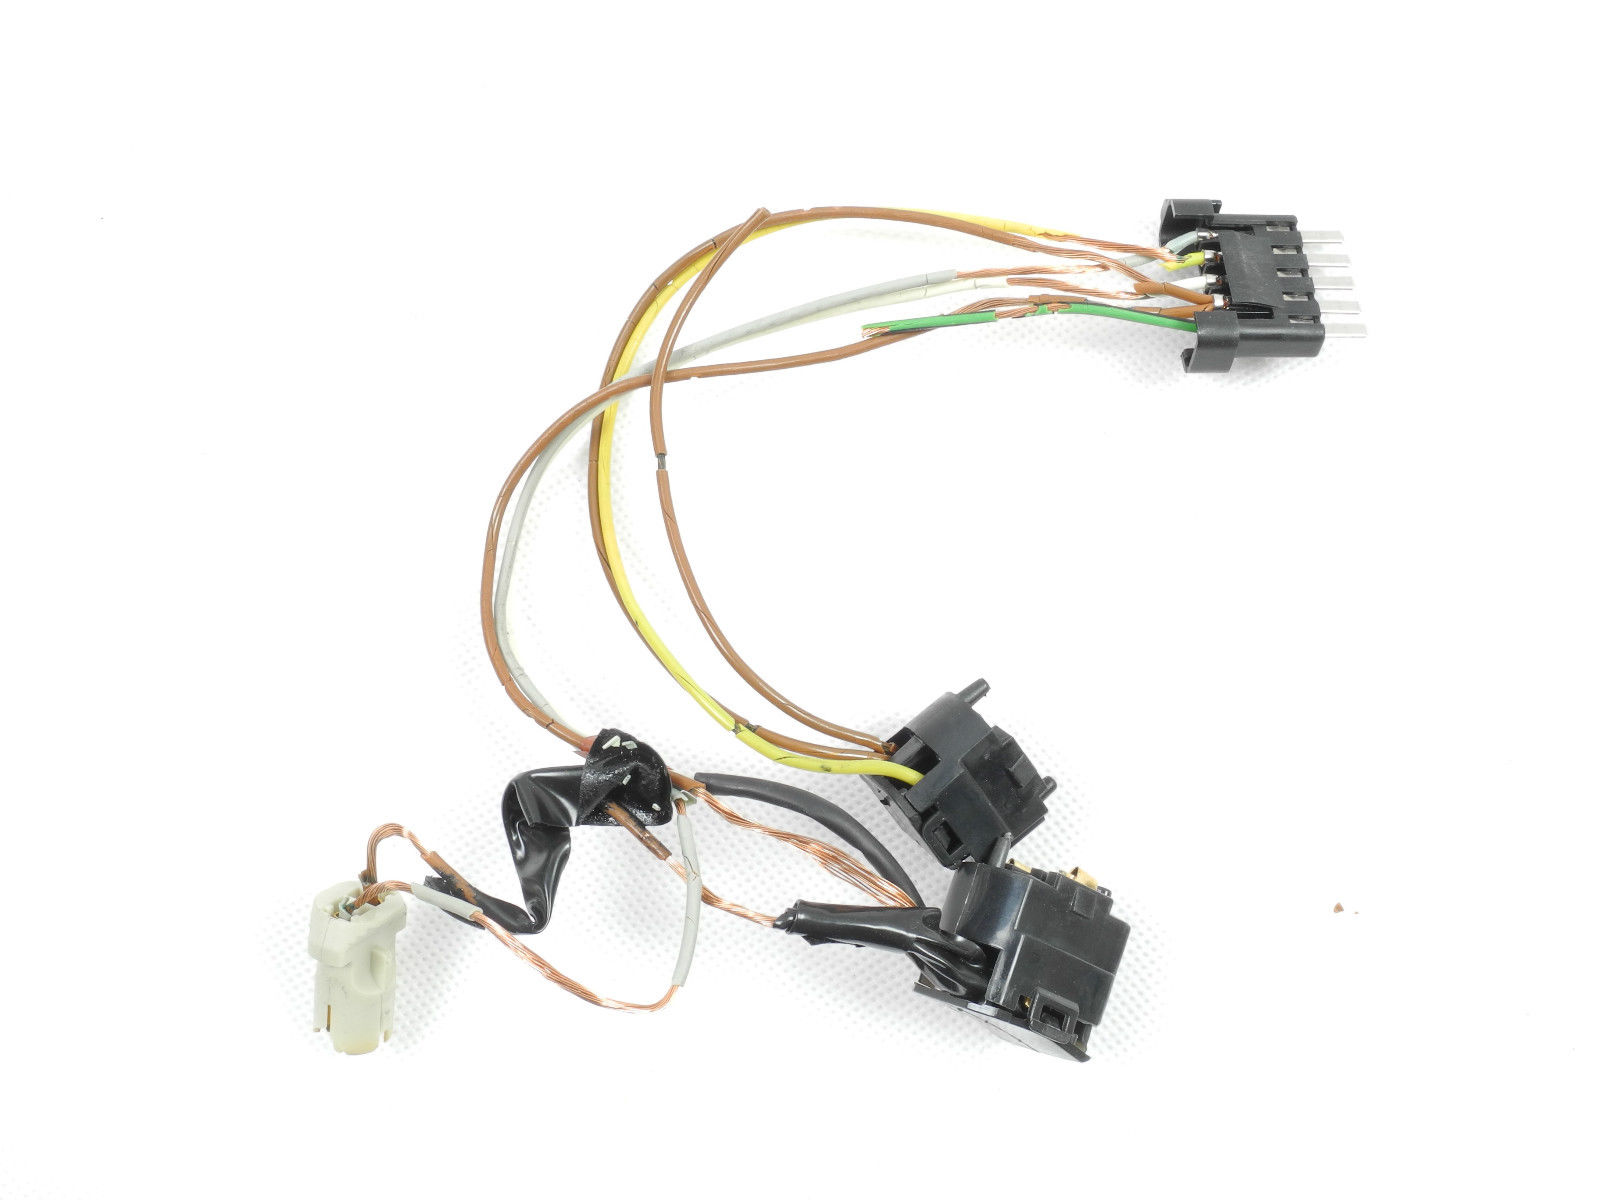 for mercedes c350 c280 c32amg c240 headlight wire harness connector rh ebay com 2002 mercedes e320 headlight wiring harness mercedes 380sl headlight wiring schematic